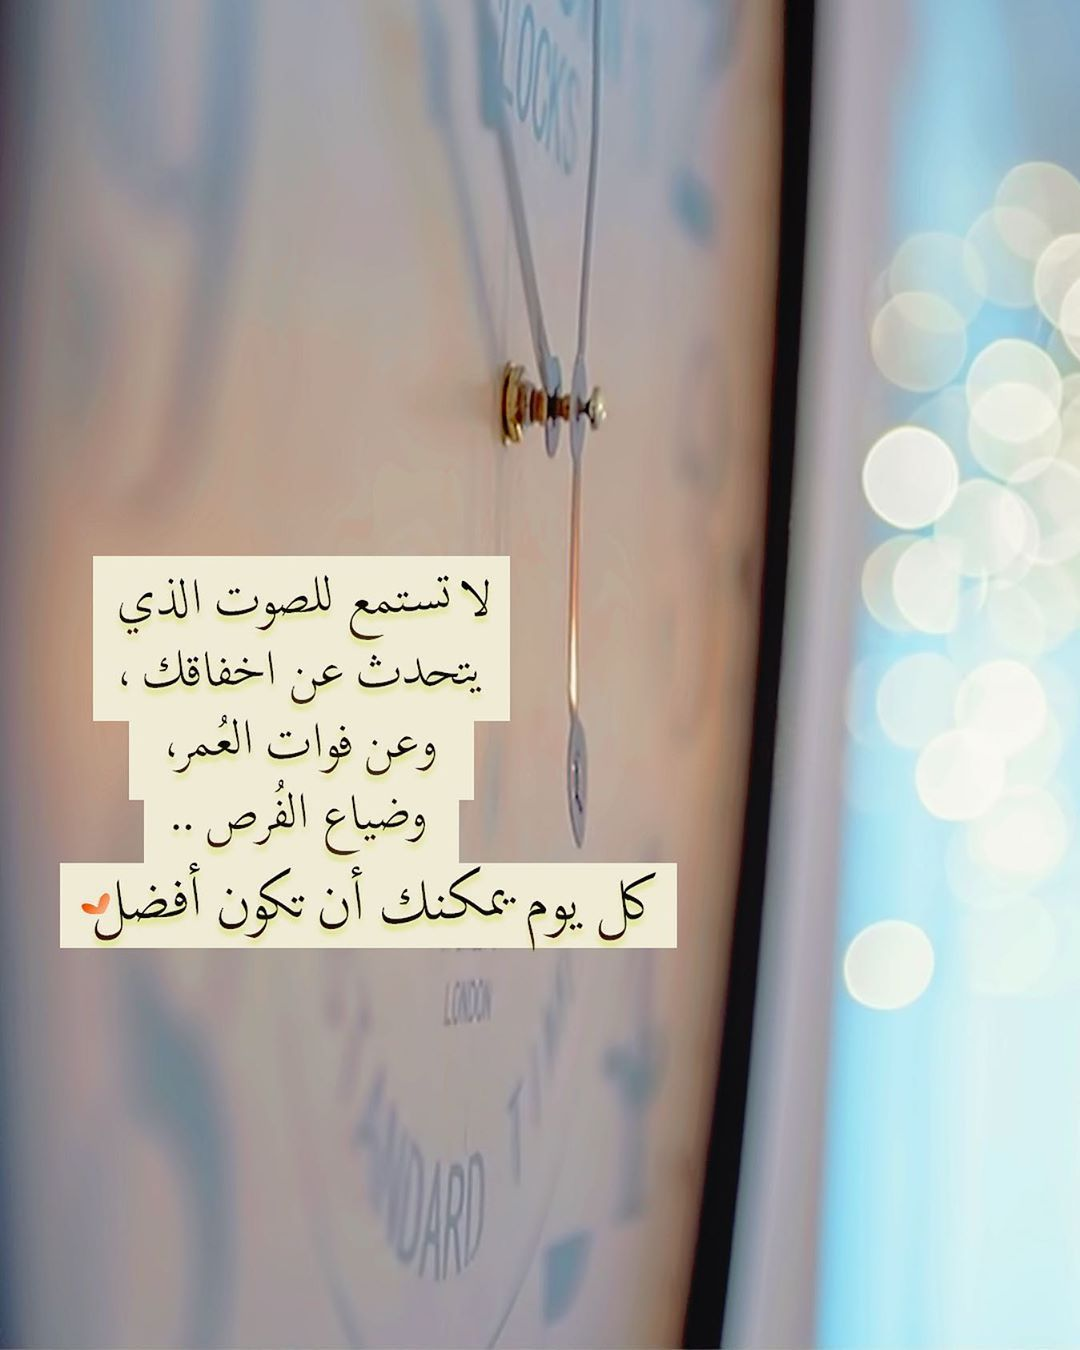 Pin By Asma690 On كلمات راقت لي Quotes Words Quotes Quotations Words